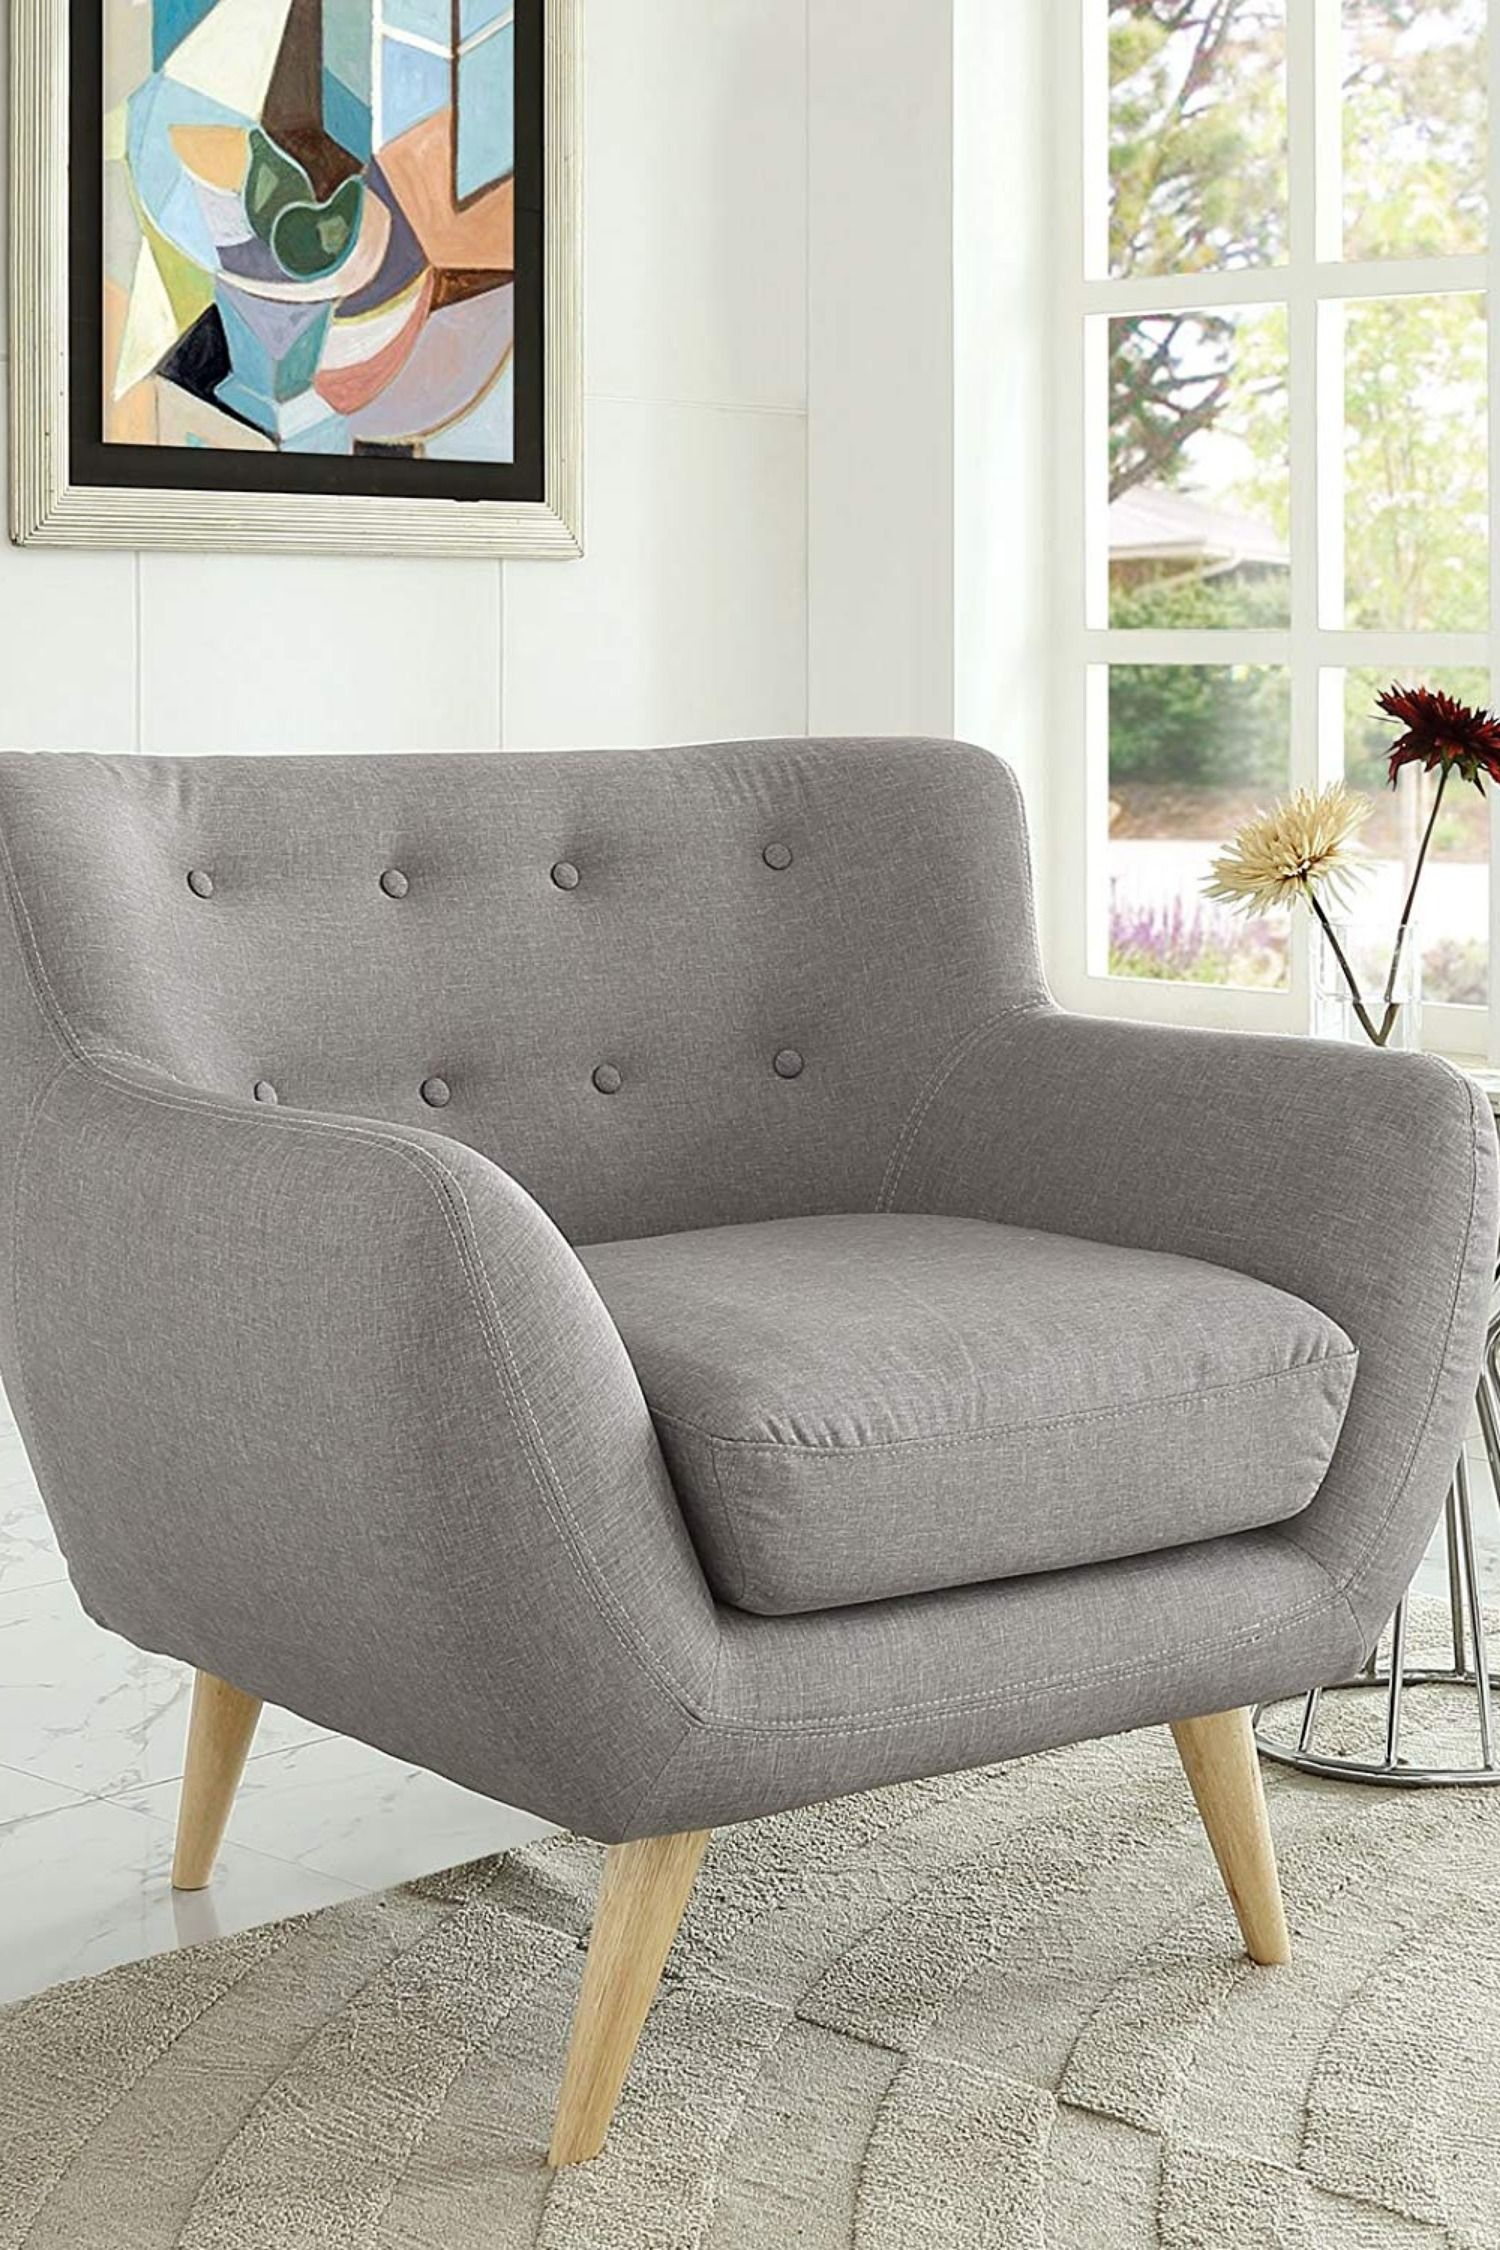 Comfy Cosy Accent Chairs Comfy Accent Chair Armchairs Comfy Accent Chair For Living Room Accent Chairs Comfy Chairs Cheap Comfy Chairs Comfy Accent Chairs Comfy chair for bedroom